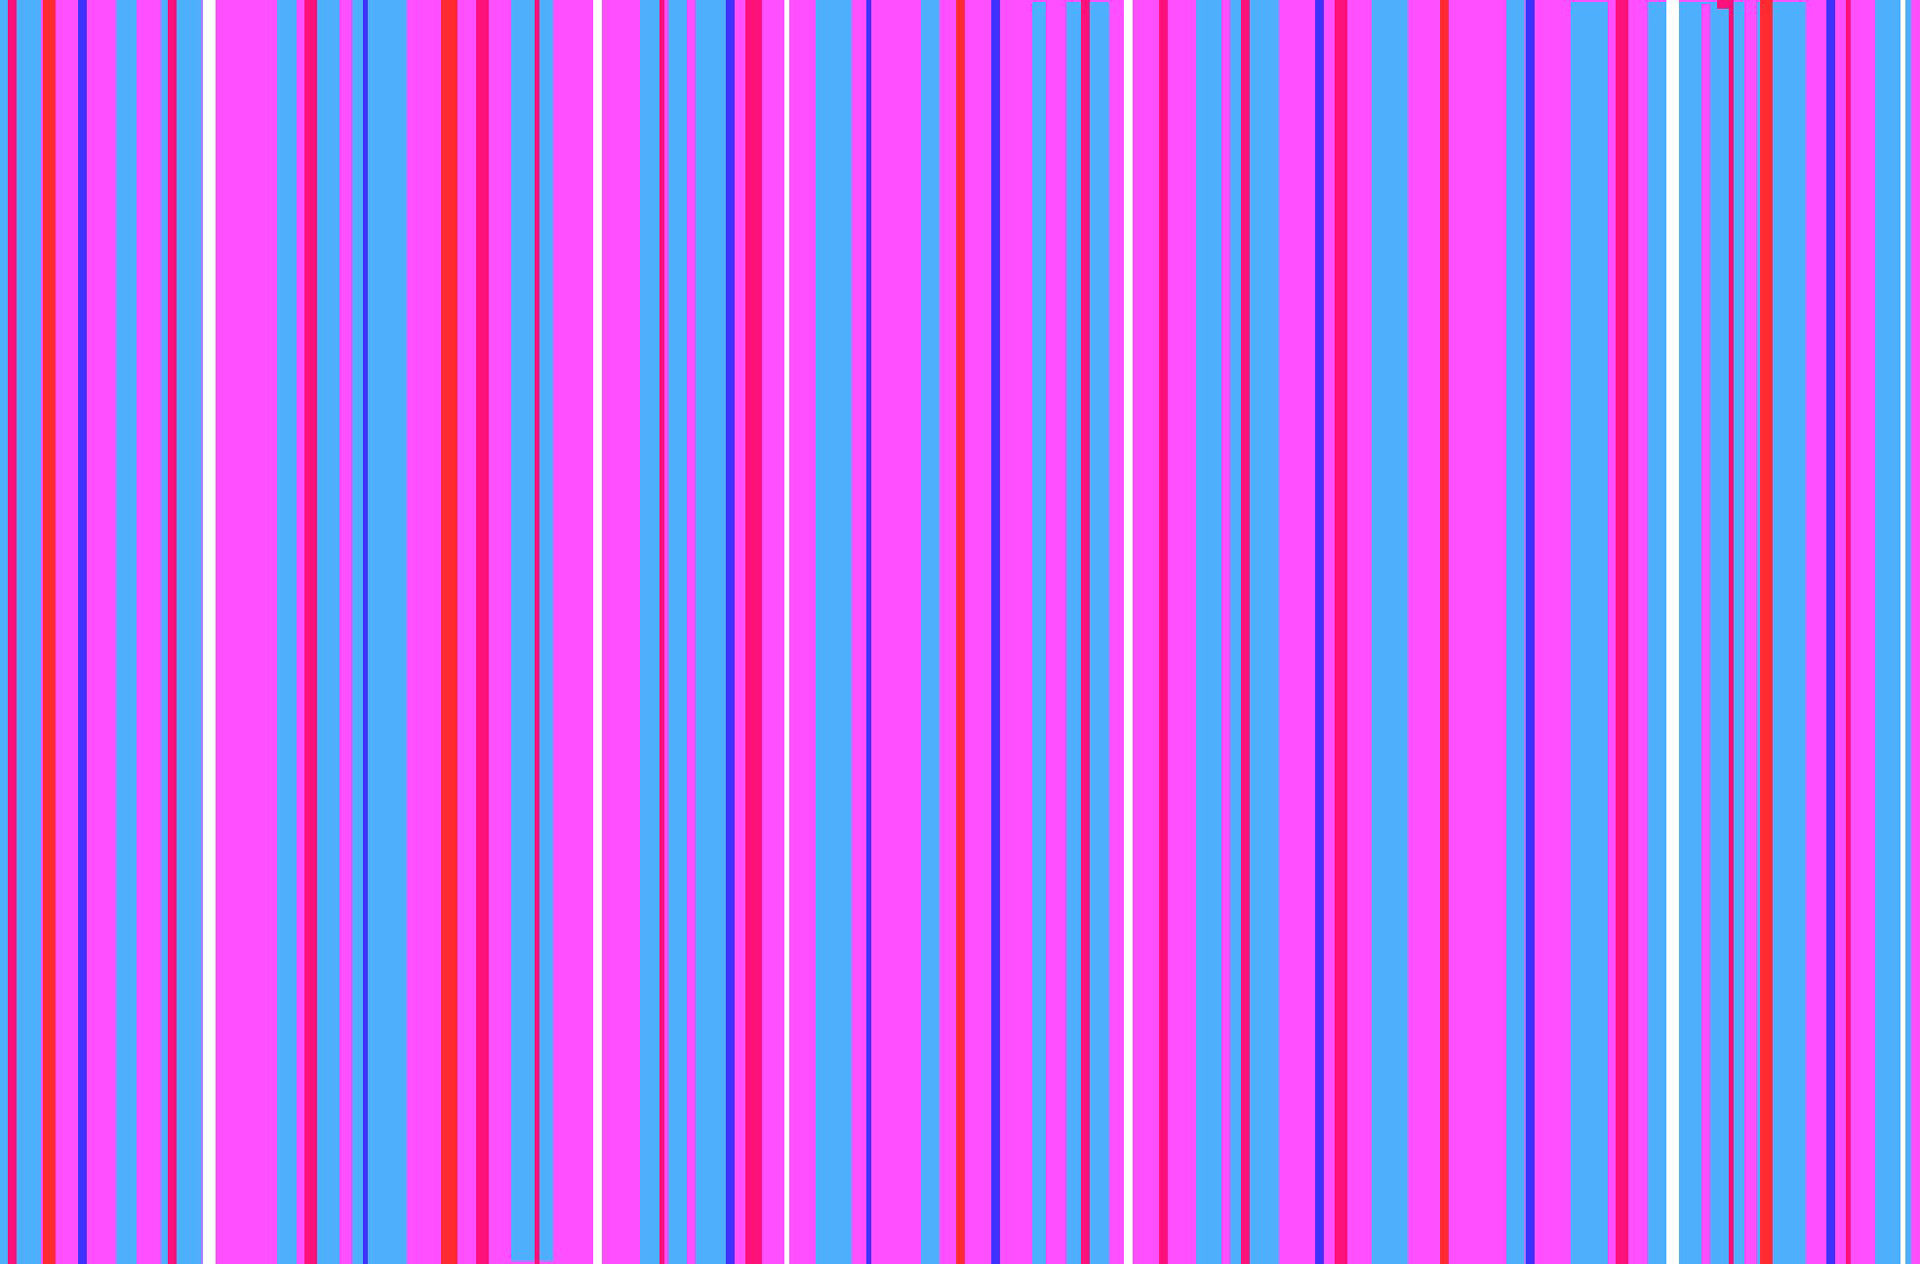 Wallpaper Iphone Pastel Blue And Pink Stripes Free Stock Photo Public Domain